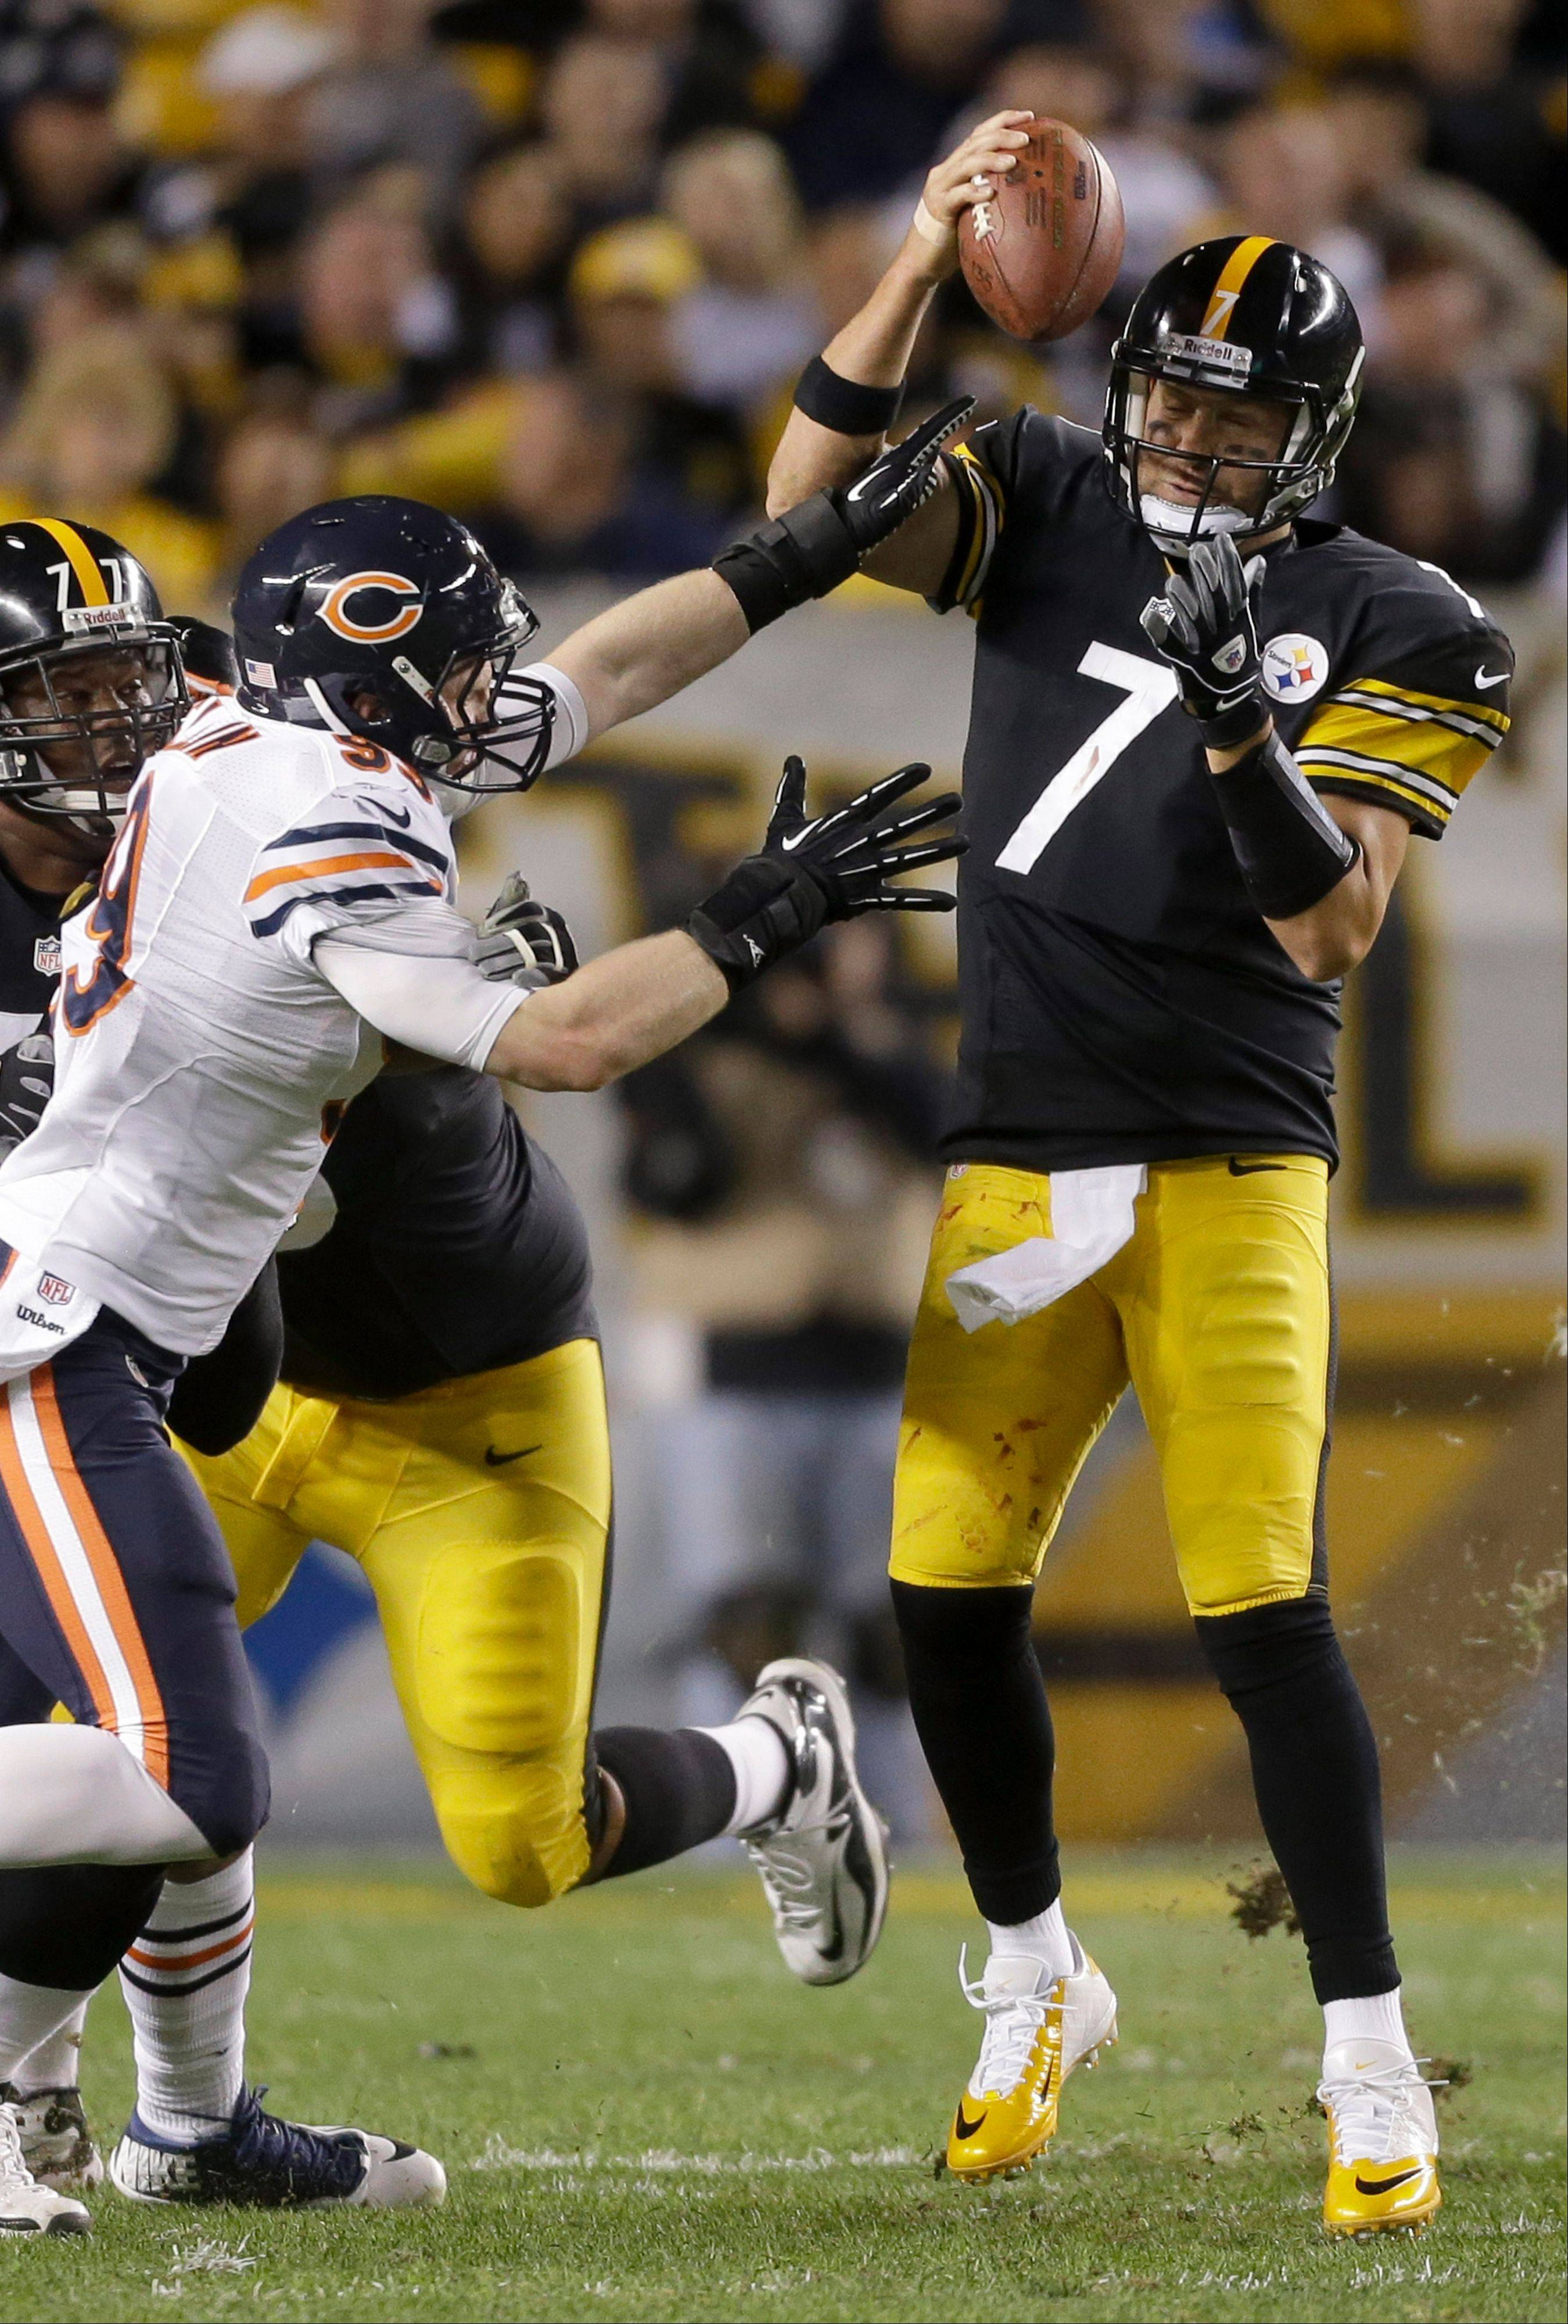 Bears' Trestman can learn a lot by beating team like Steelers